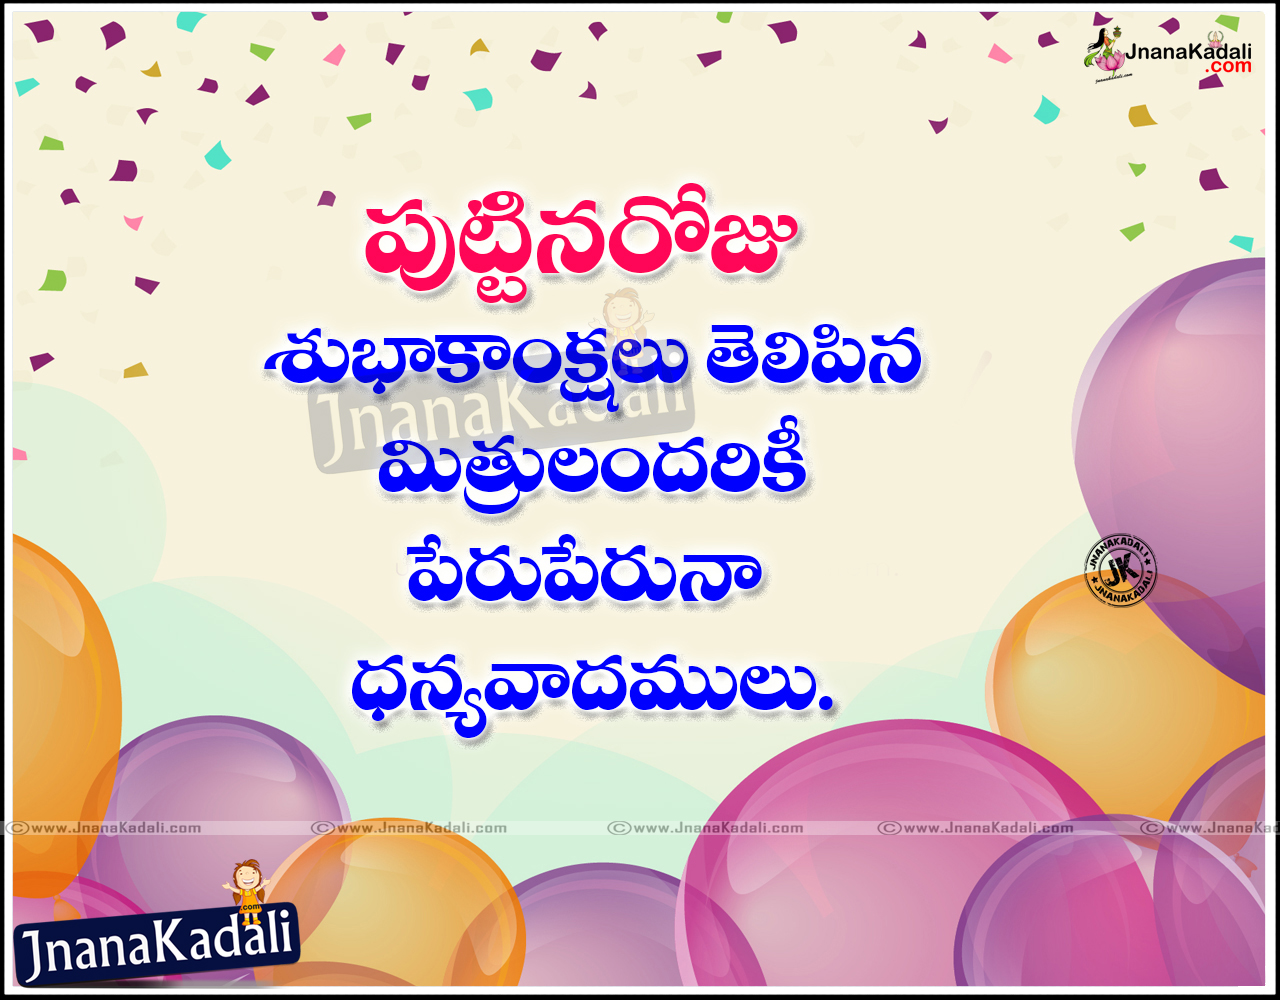 Beatiful Birthday Thanks Greetings wishes in telugu – Thanks Greetings for Birthday